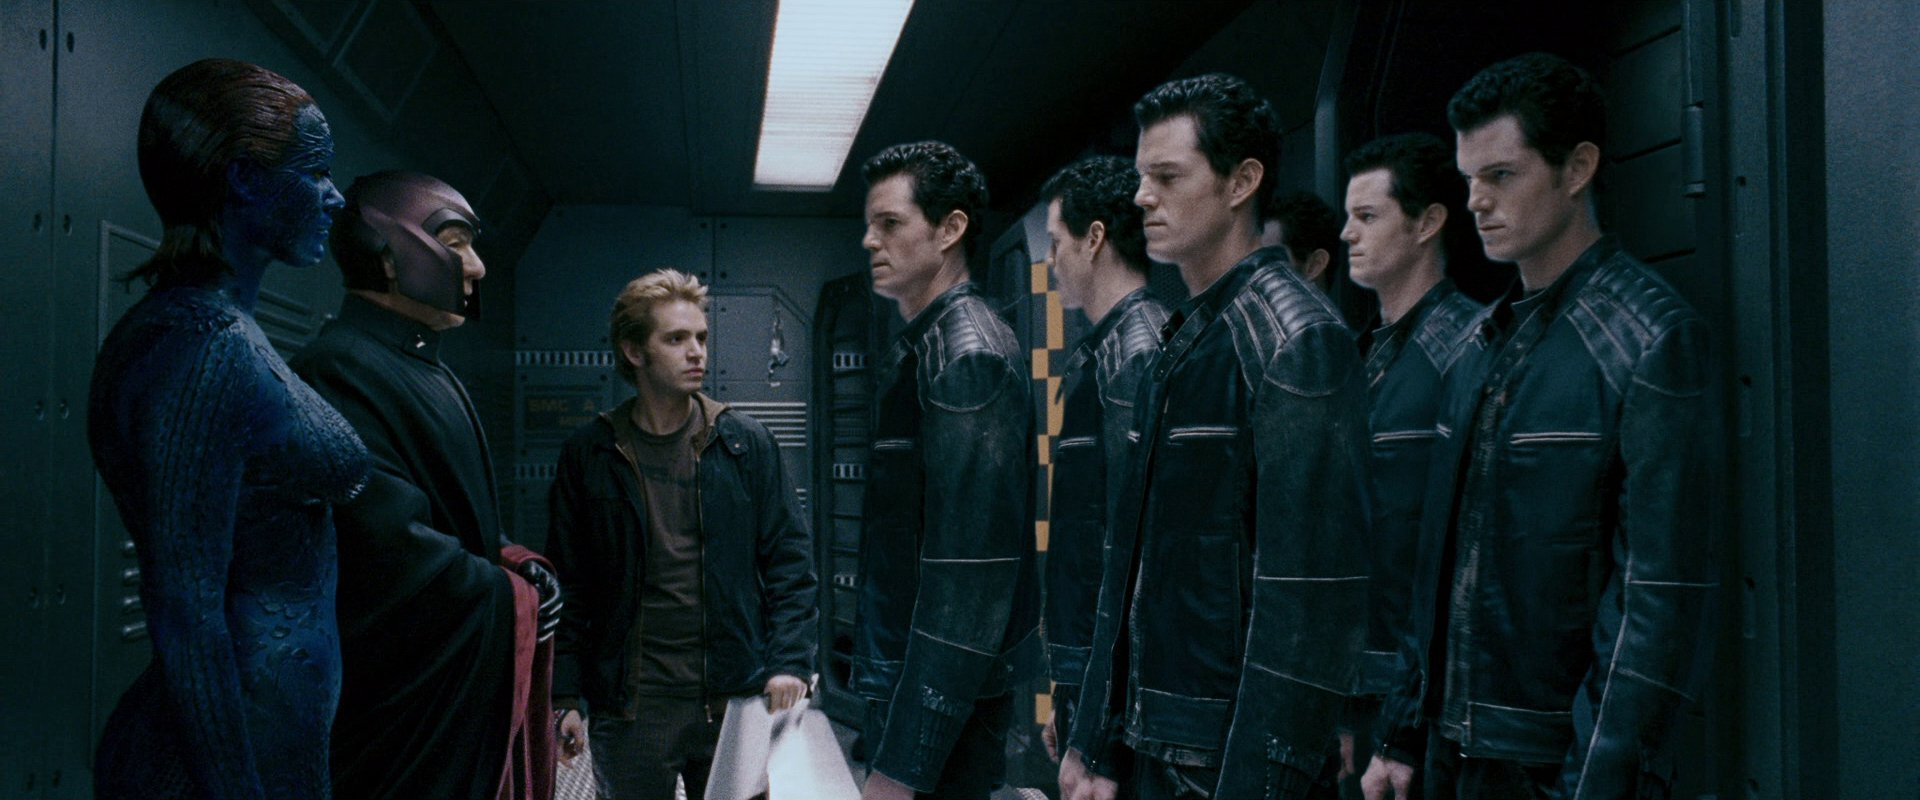 Photo du film X-Men : L'Affrontement final avec Multiple Man